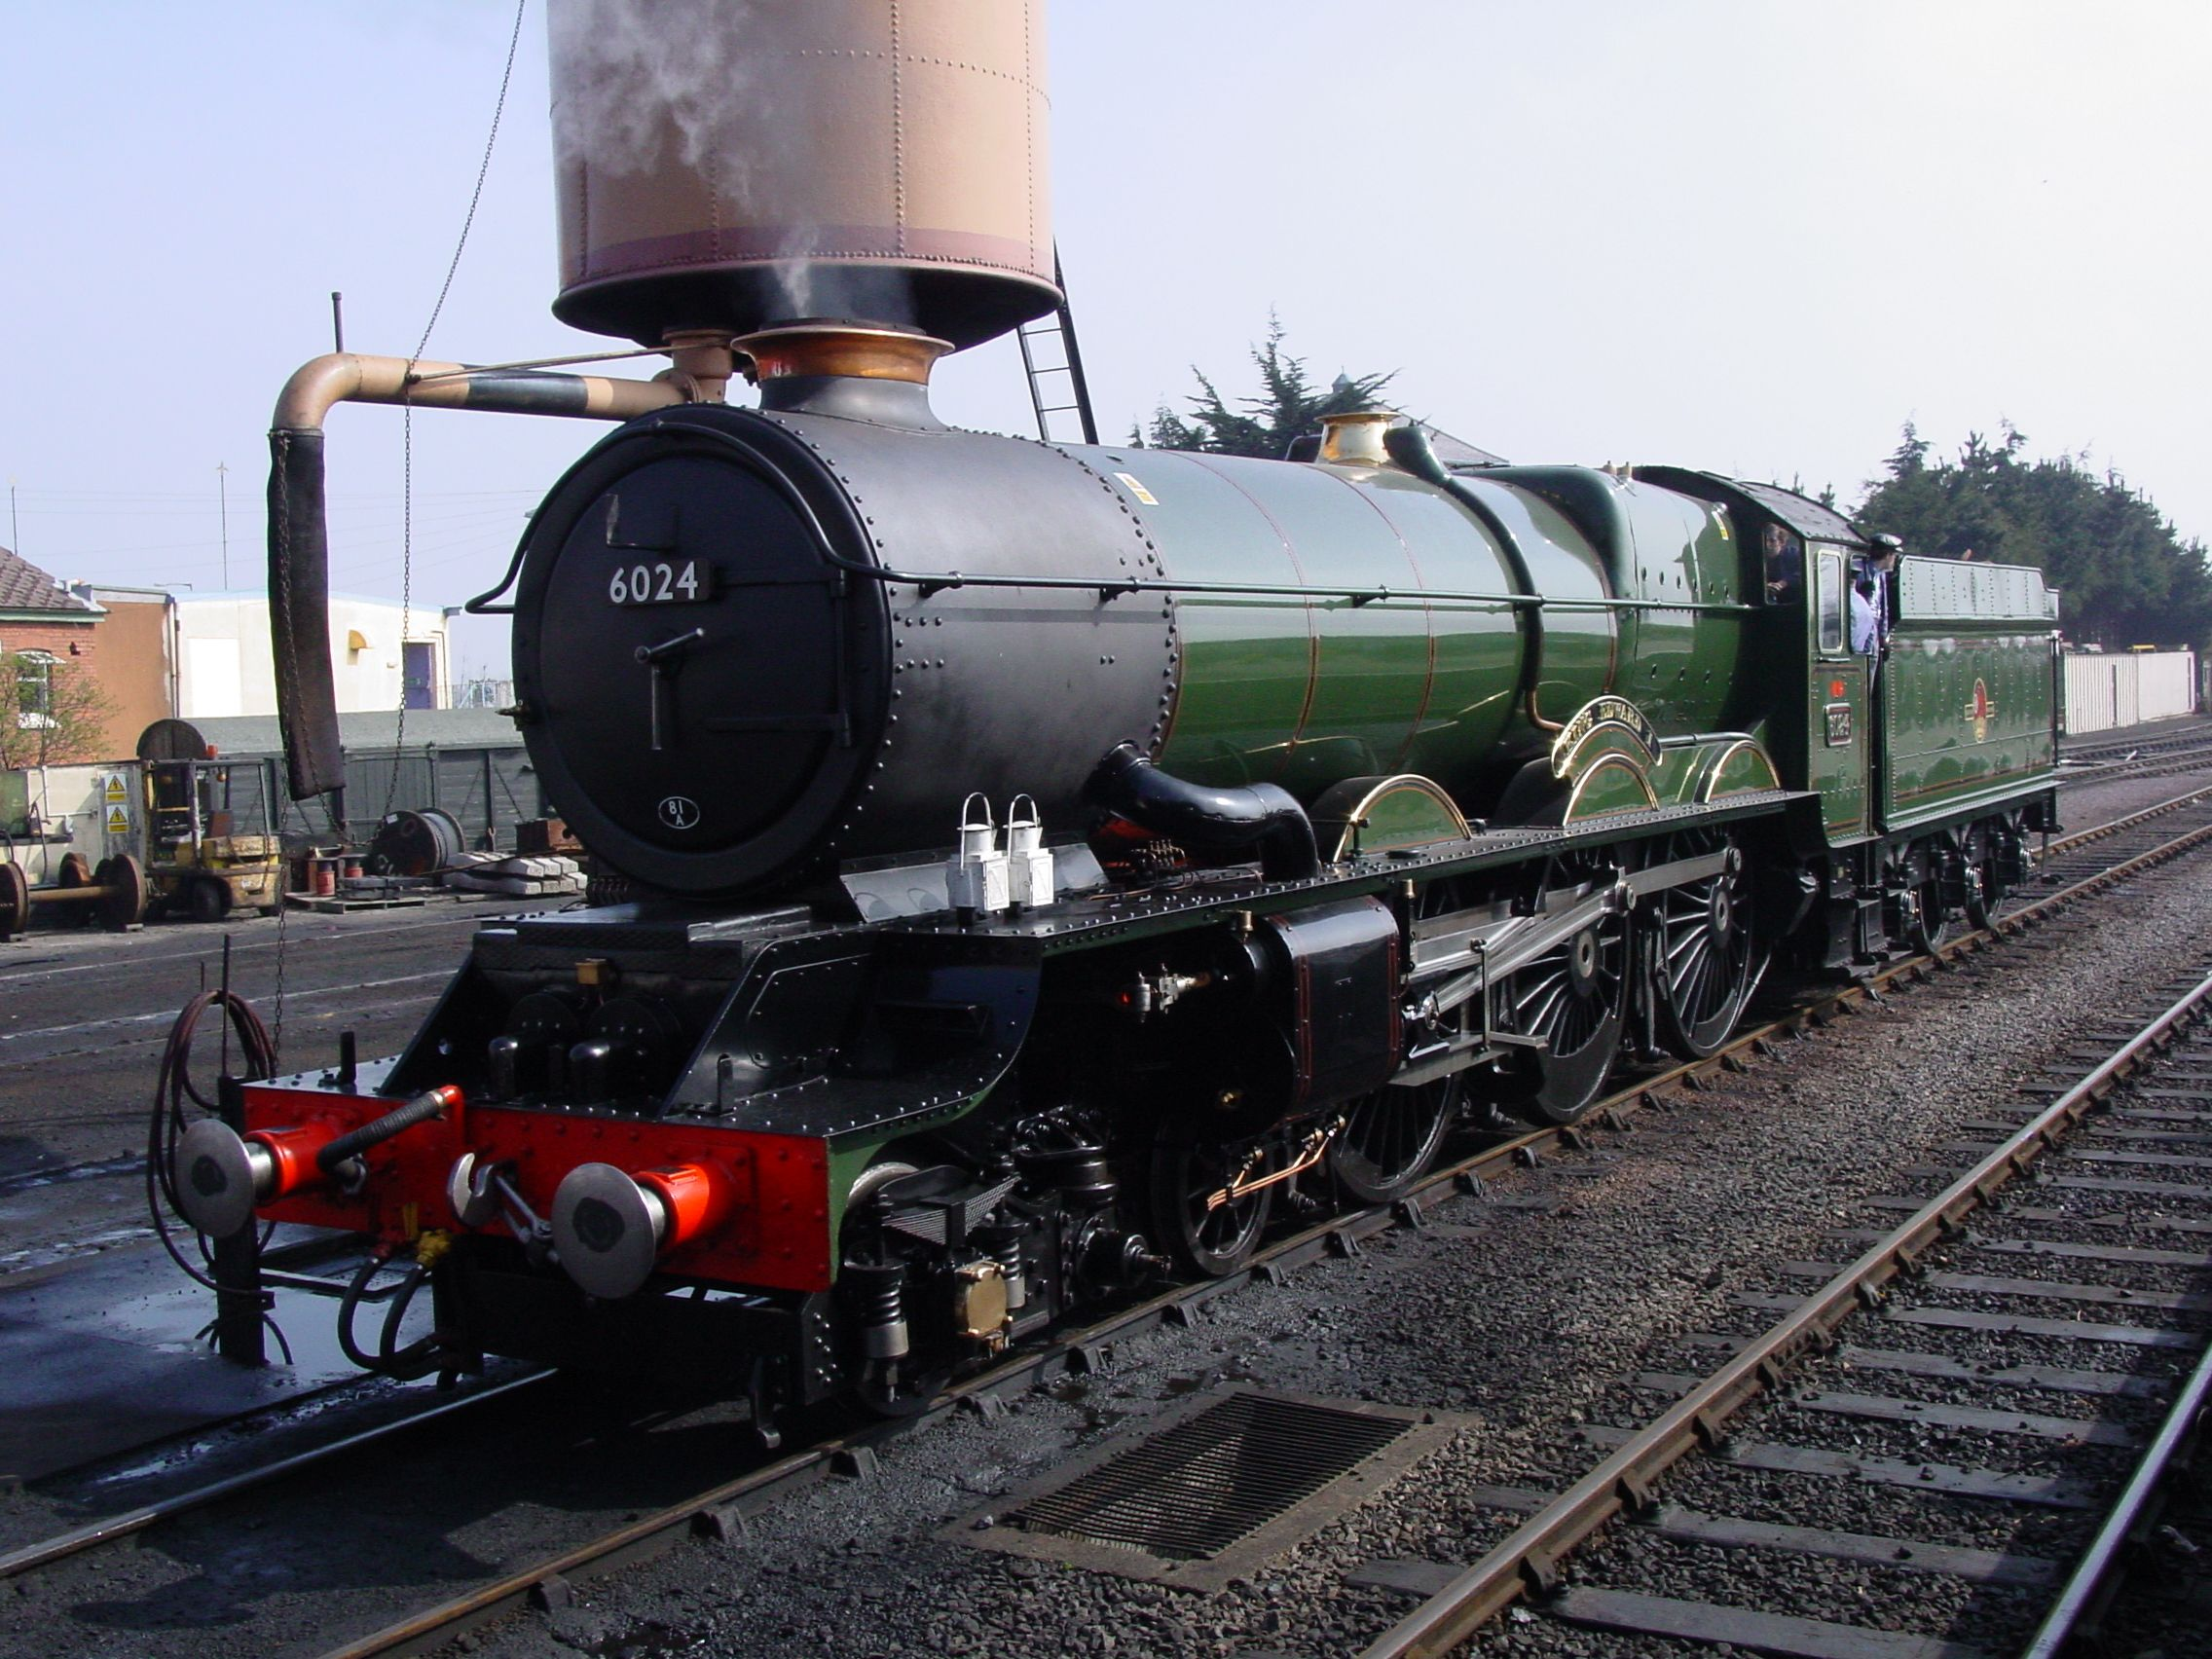 A GWR King in Minehead Station; Great Western Railway (GWR) 6000 Class 6024 King Edward I is a preserved steam locomotive. She ran from 1930 to 1962 for the Great Western Railway and latterly British Railways hauling express passenger services.